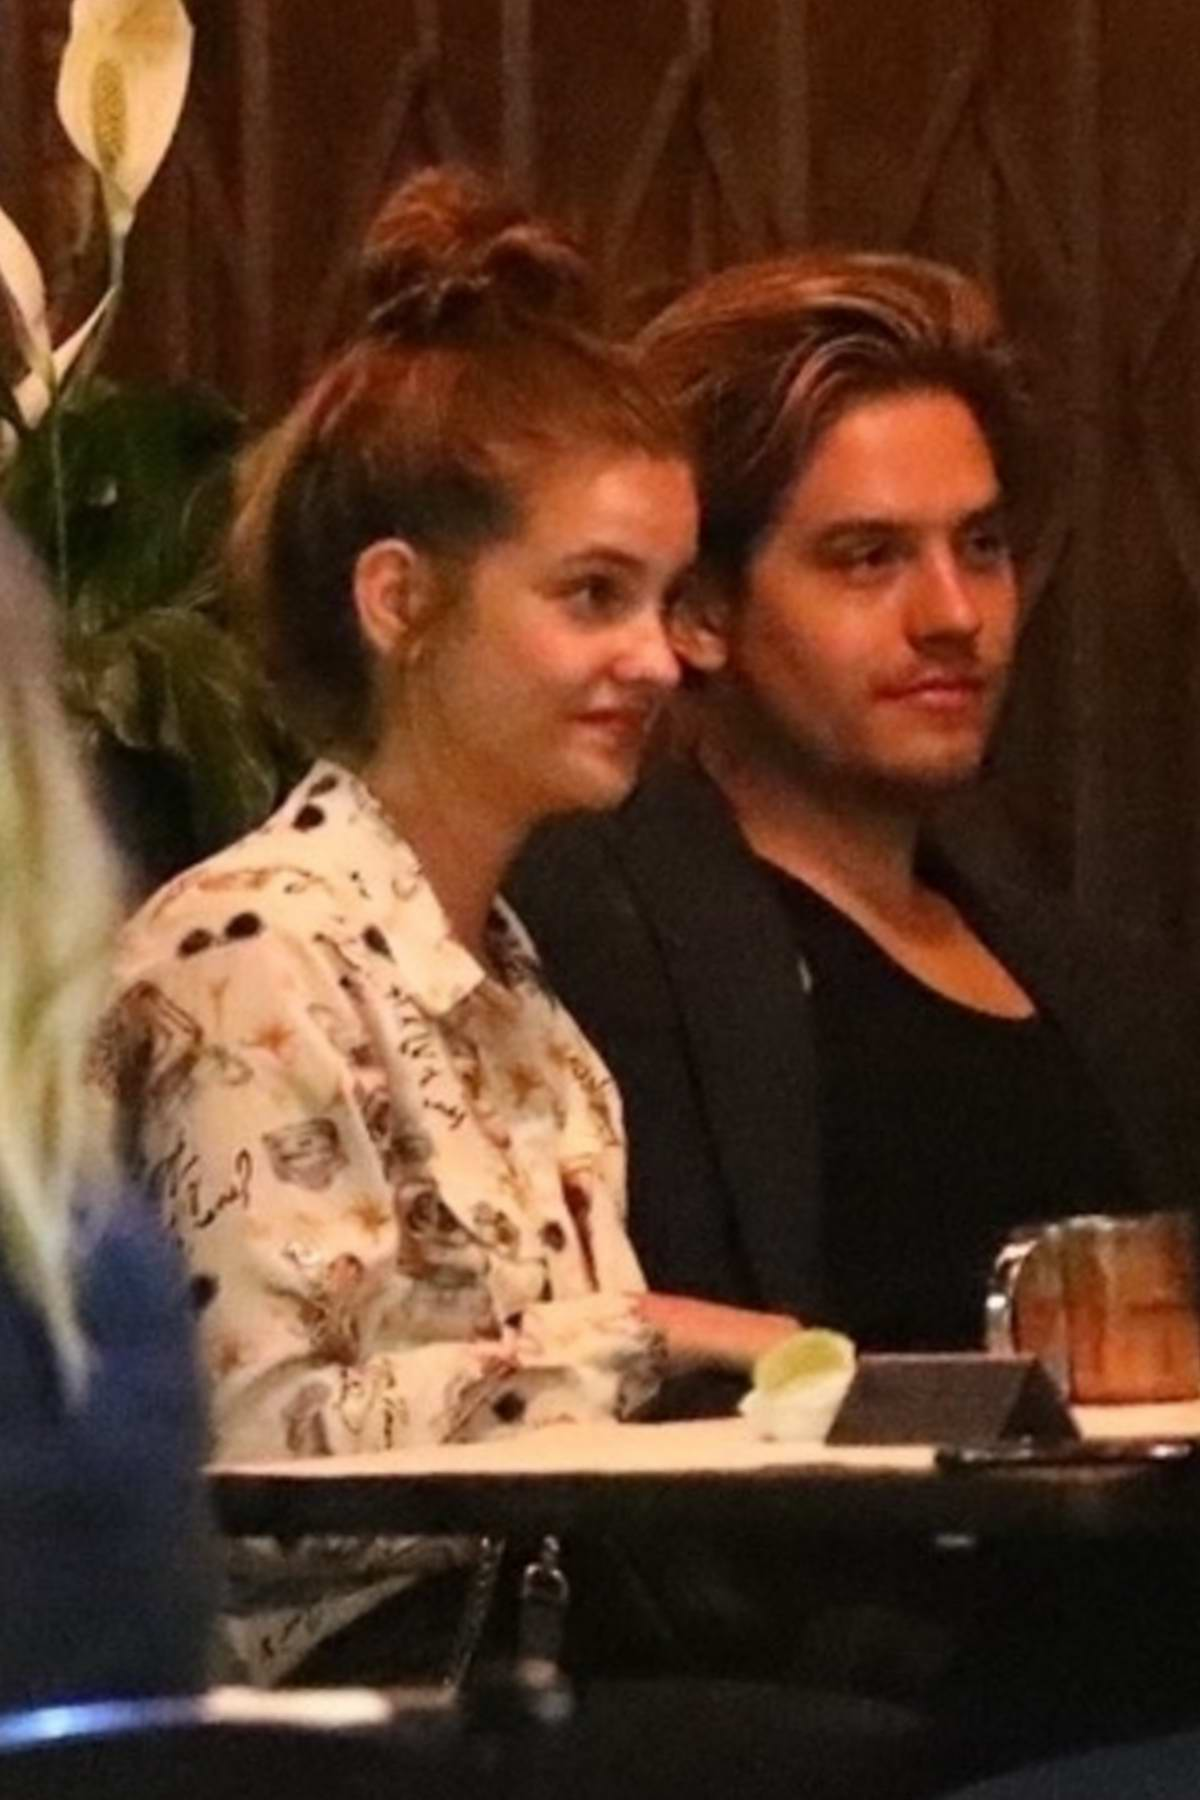 Barbara Palvin and Dylan Sprouse enjoy dinner with friends in Los Feliz, California